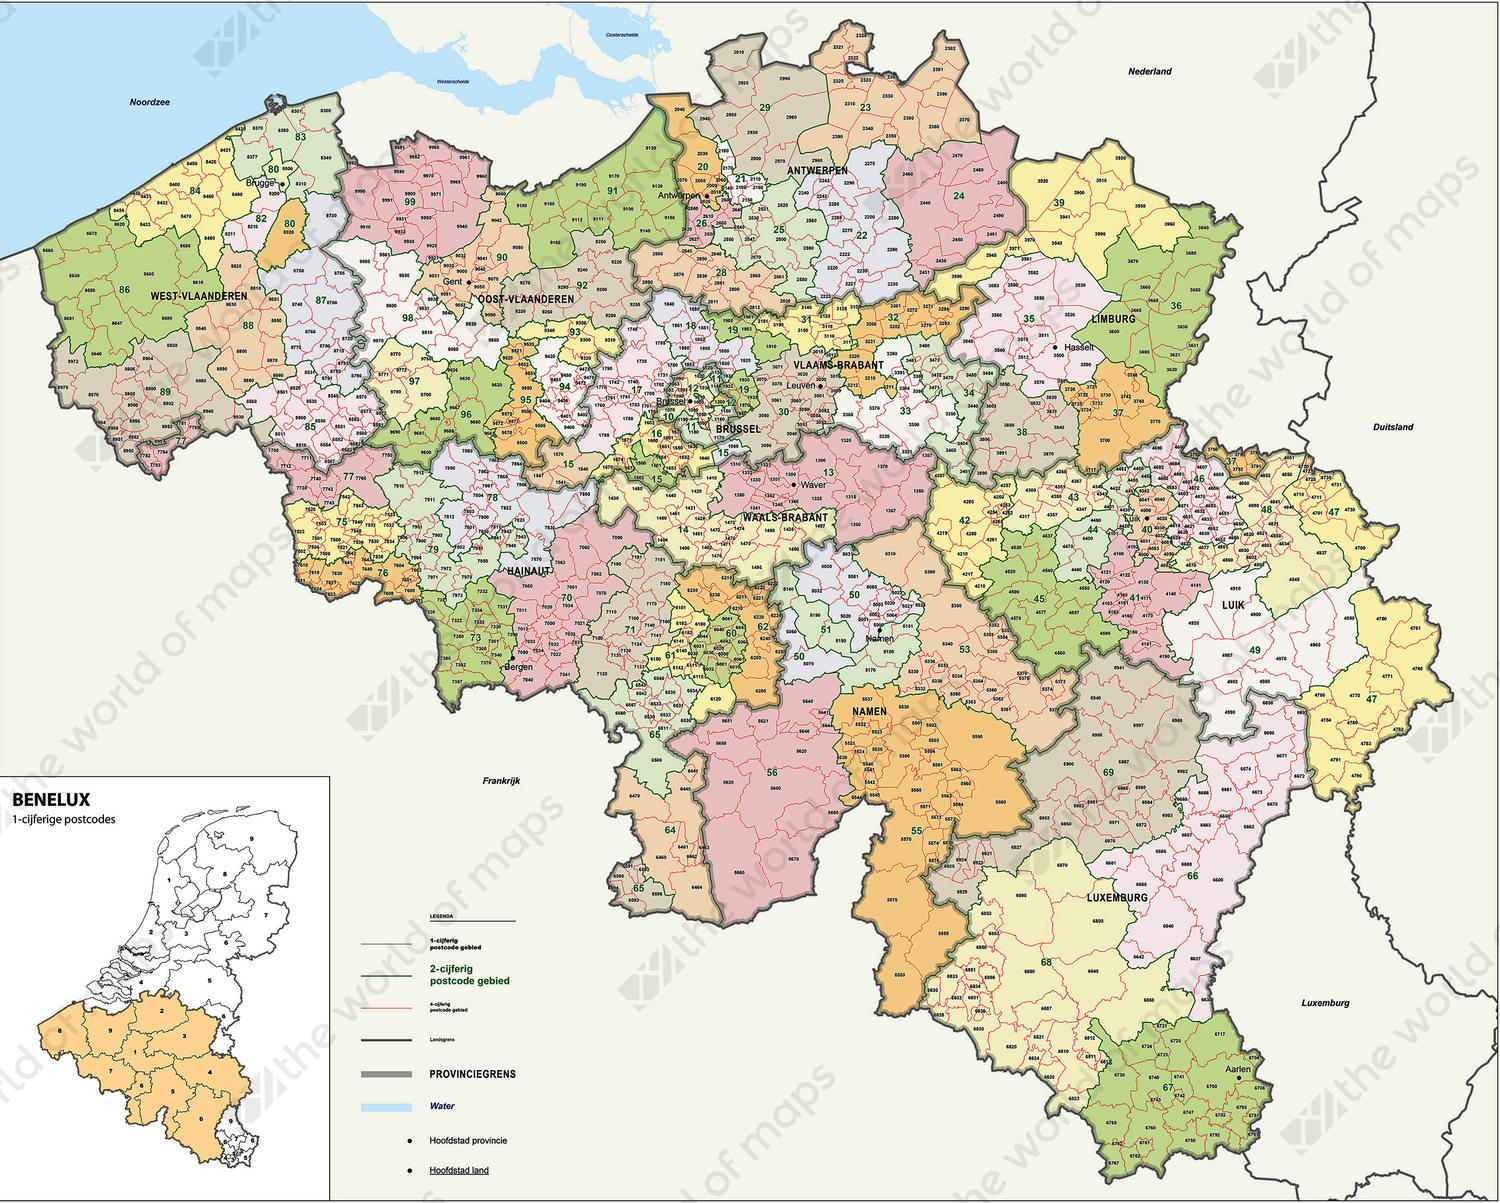 Digital Postcode Map Belgium 24 digits 1389 The World of Mapscom